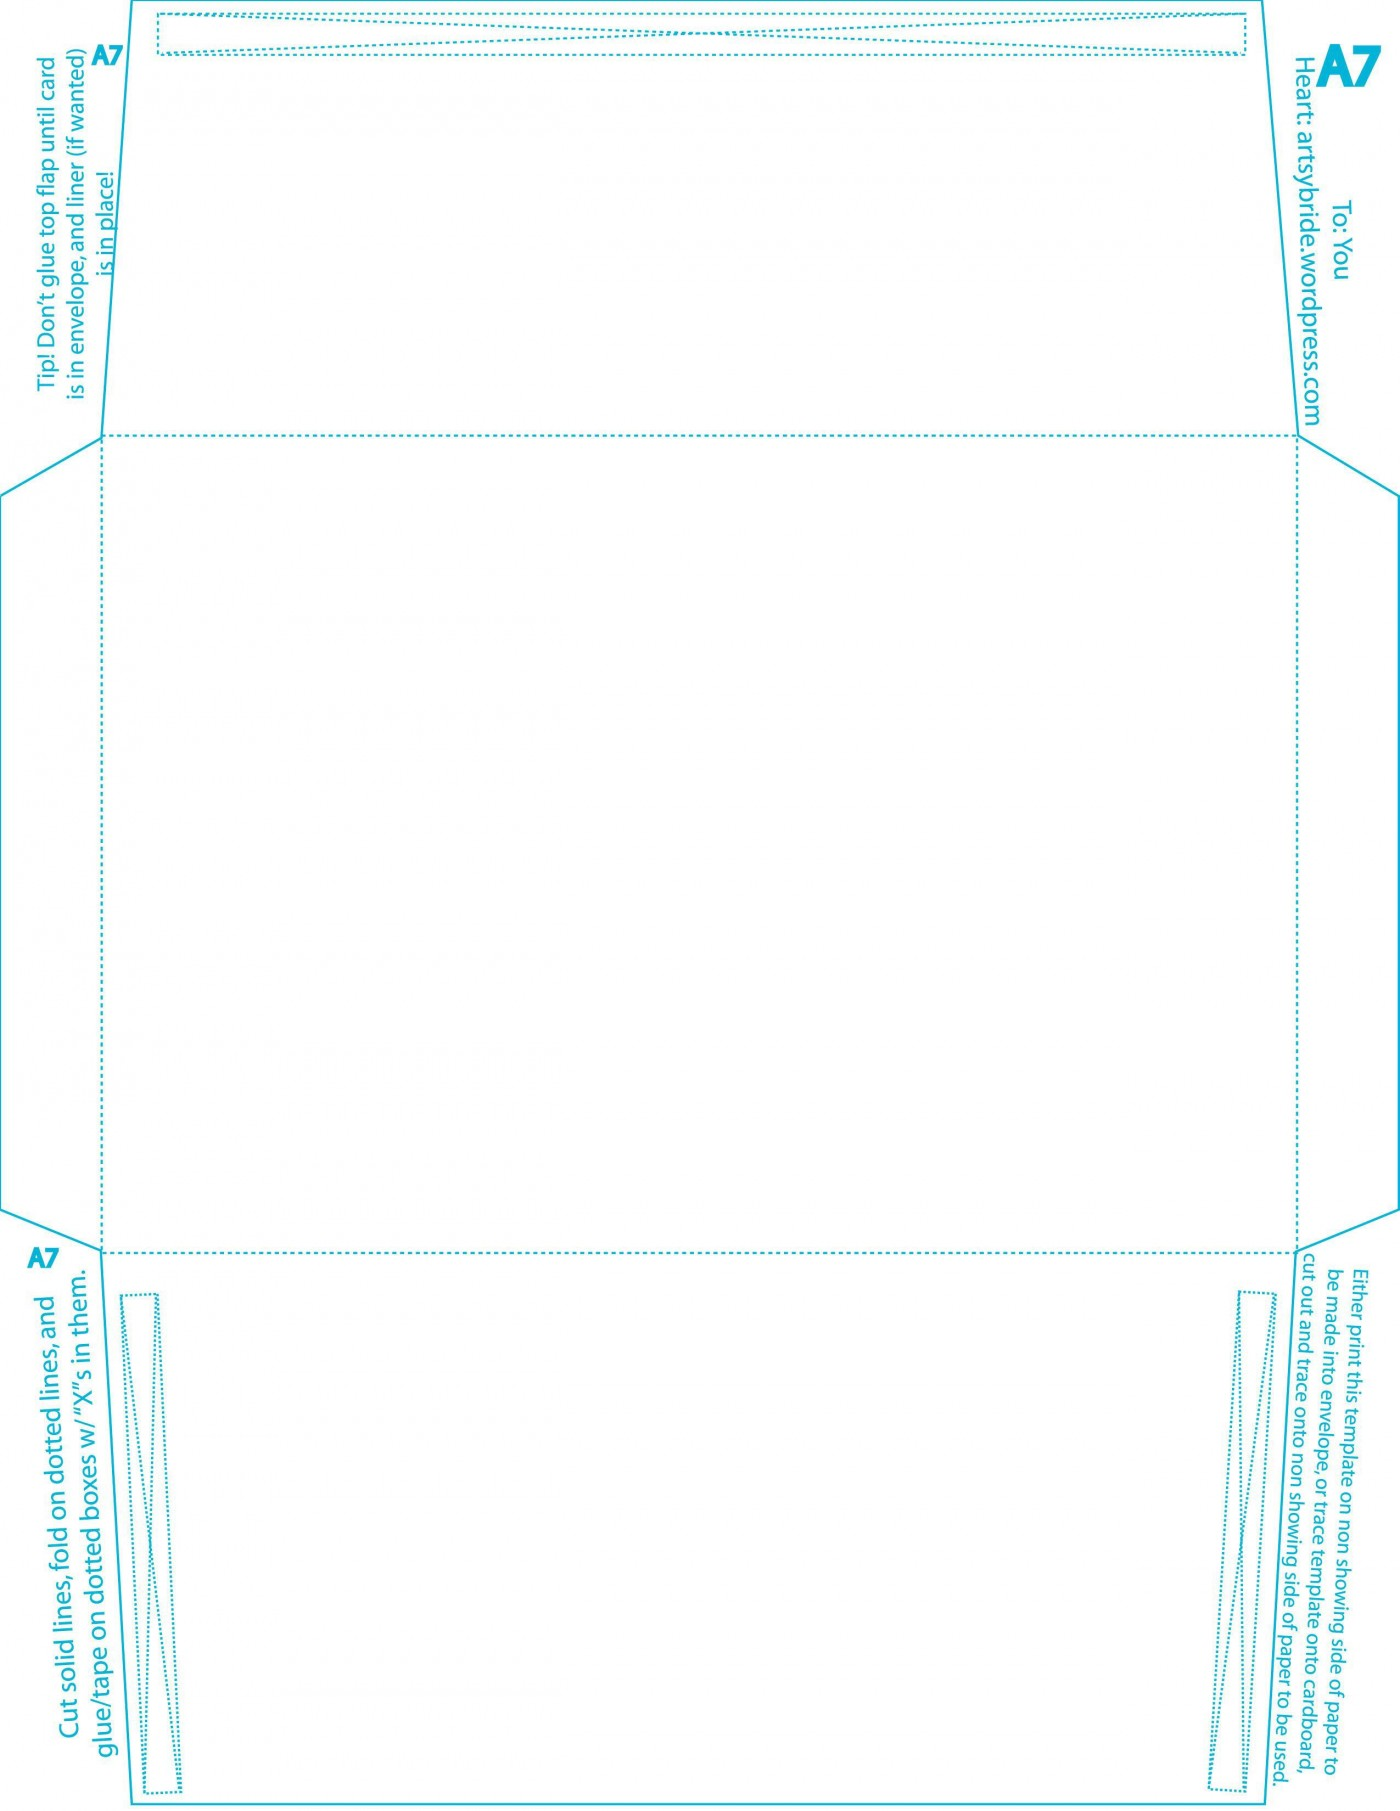 005 Formidable A7 Envelope Liner Template Square Flap Picture 1400